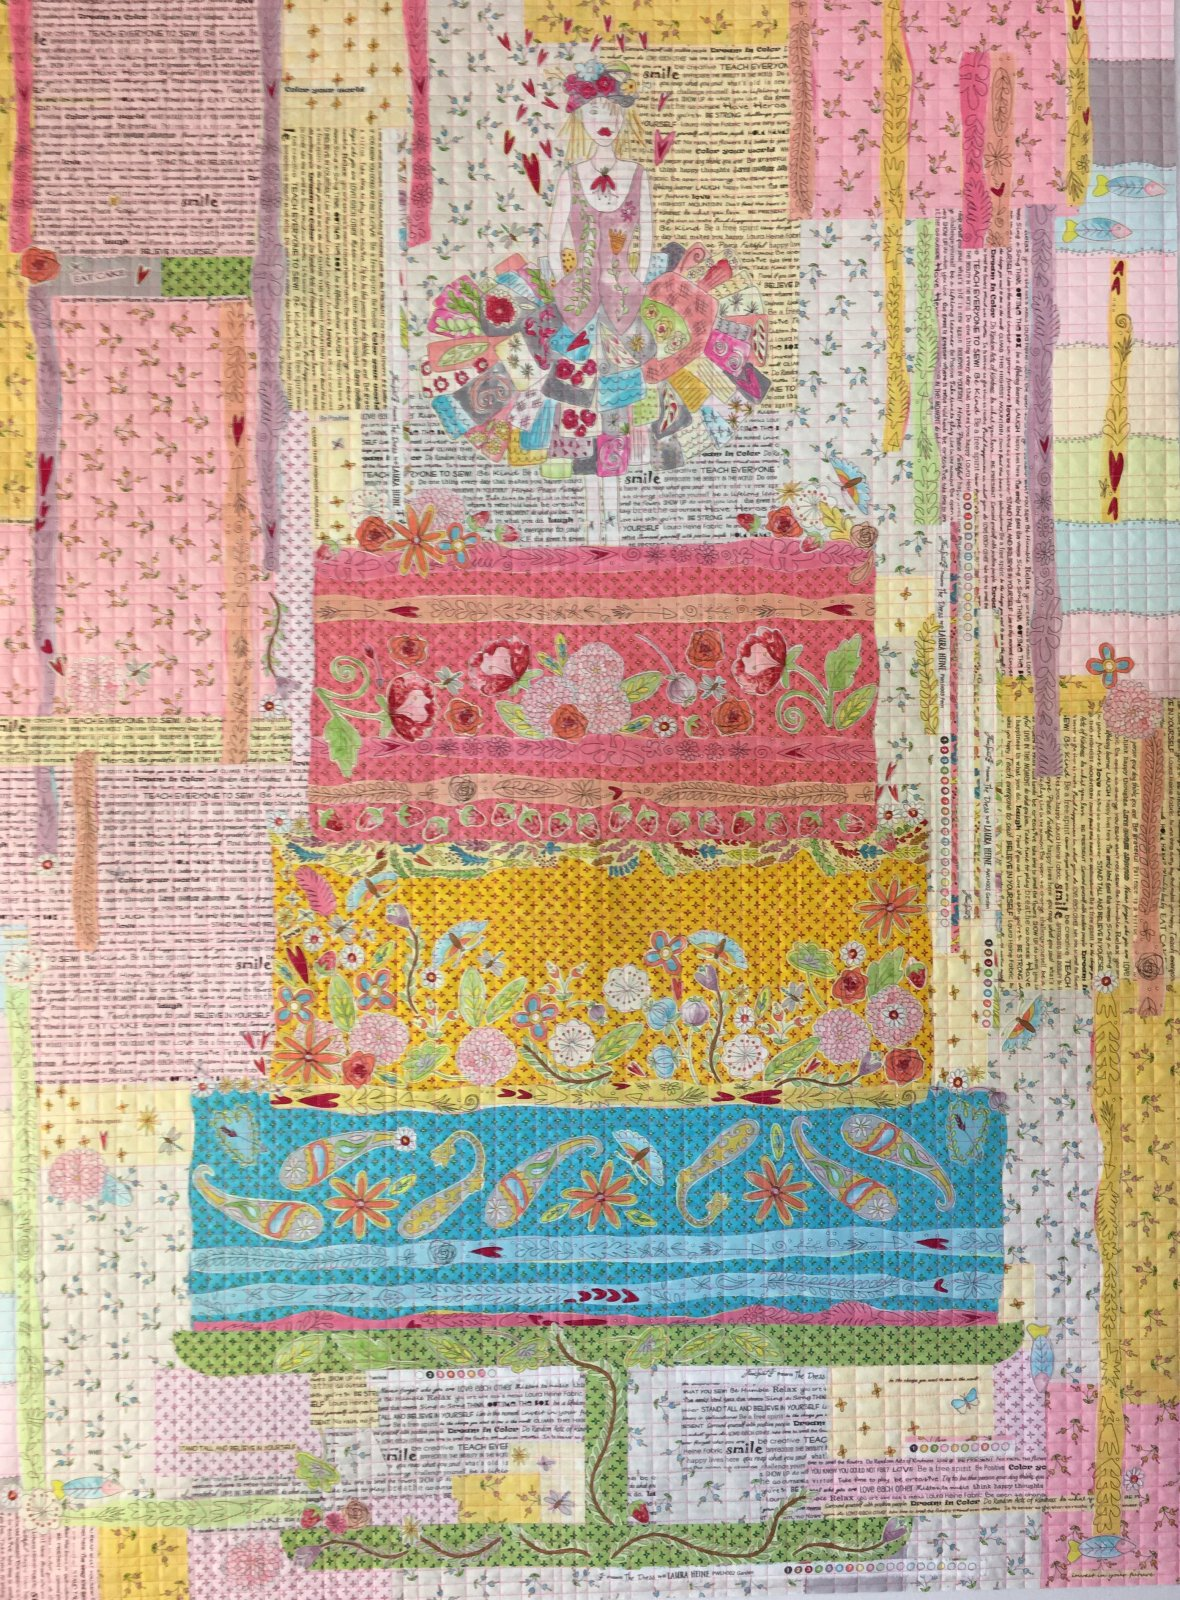 Eat Cake Collage Quilt Kit by Laura Heine - SPECIAL INCLUDES PATTERN!